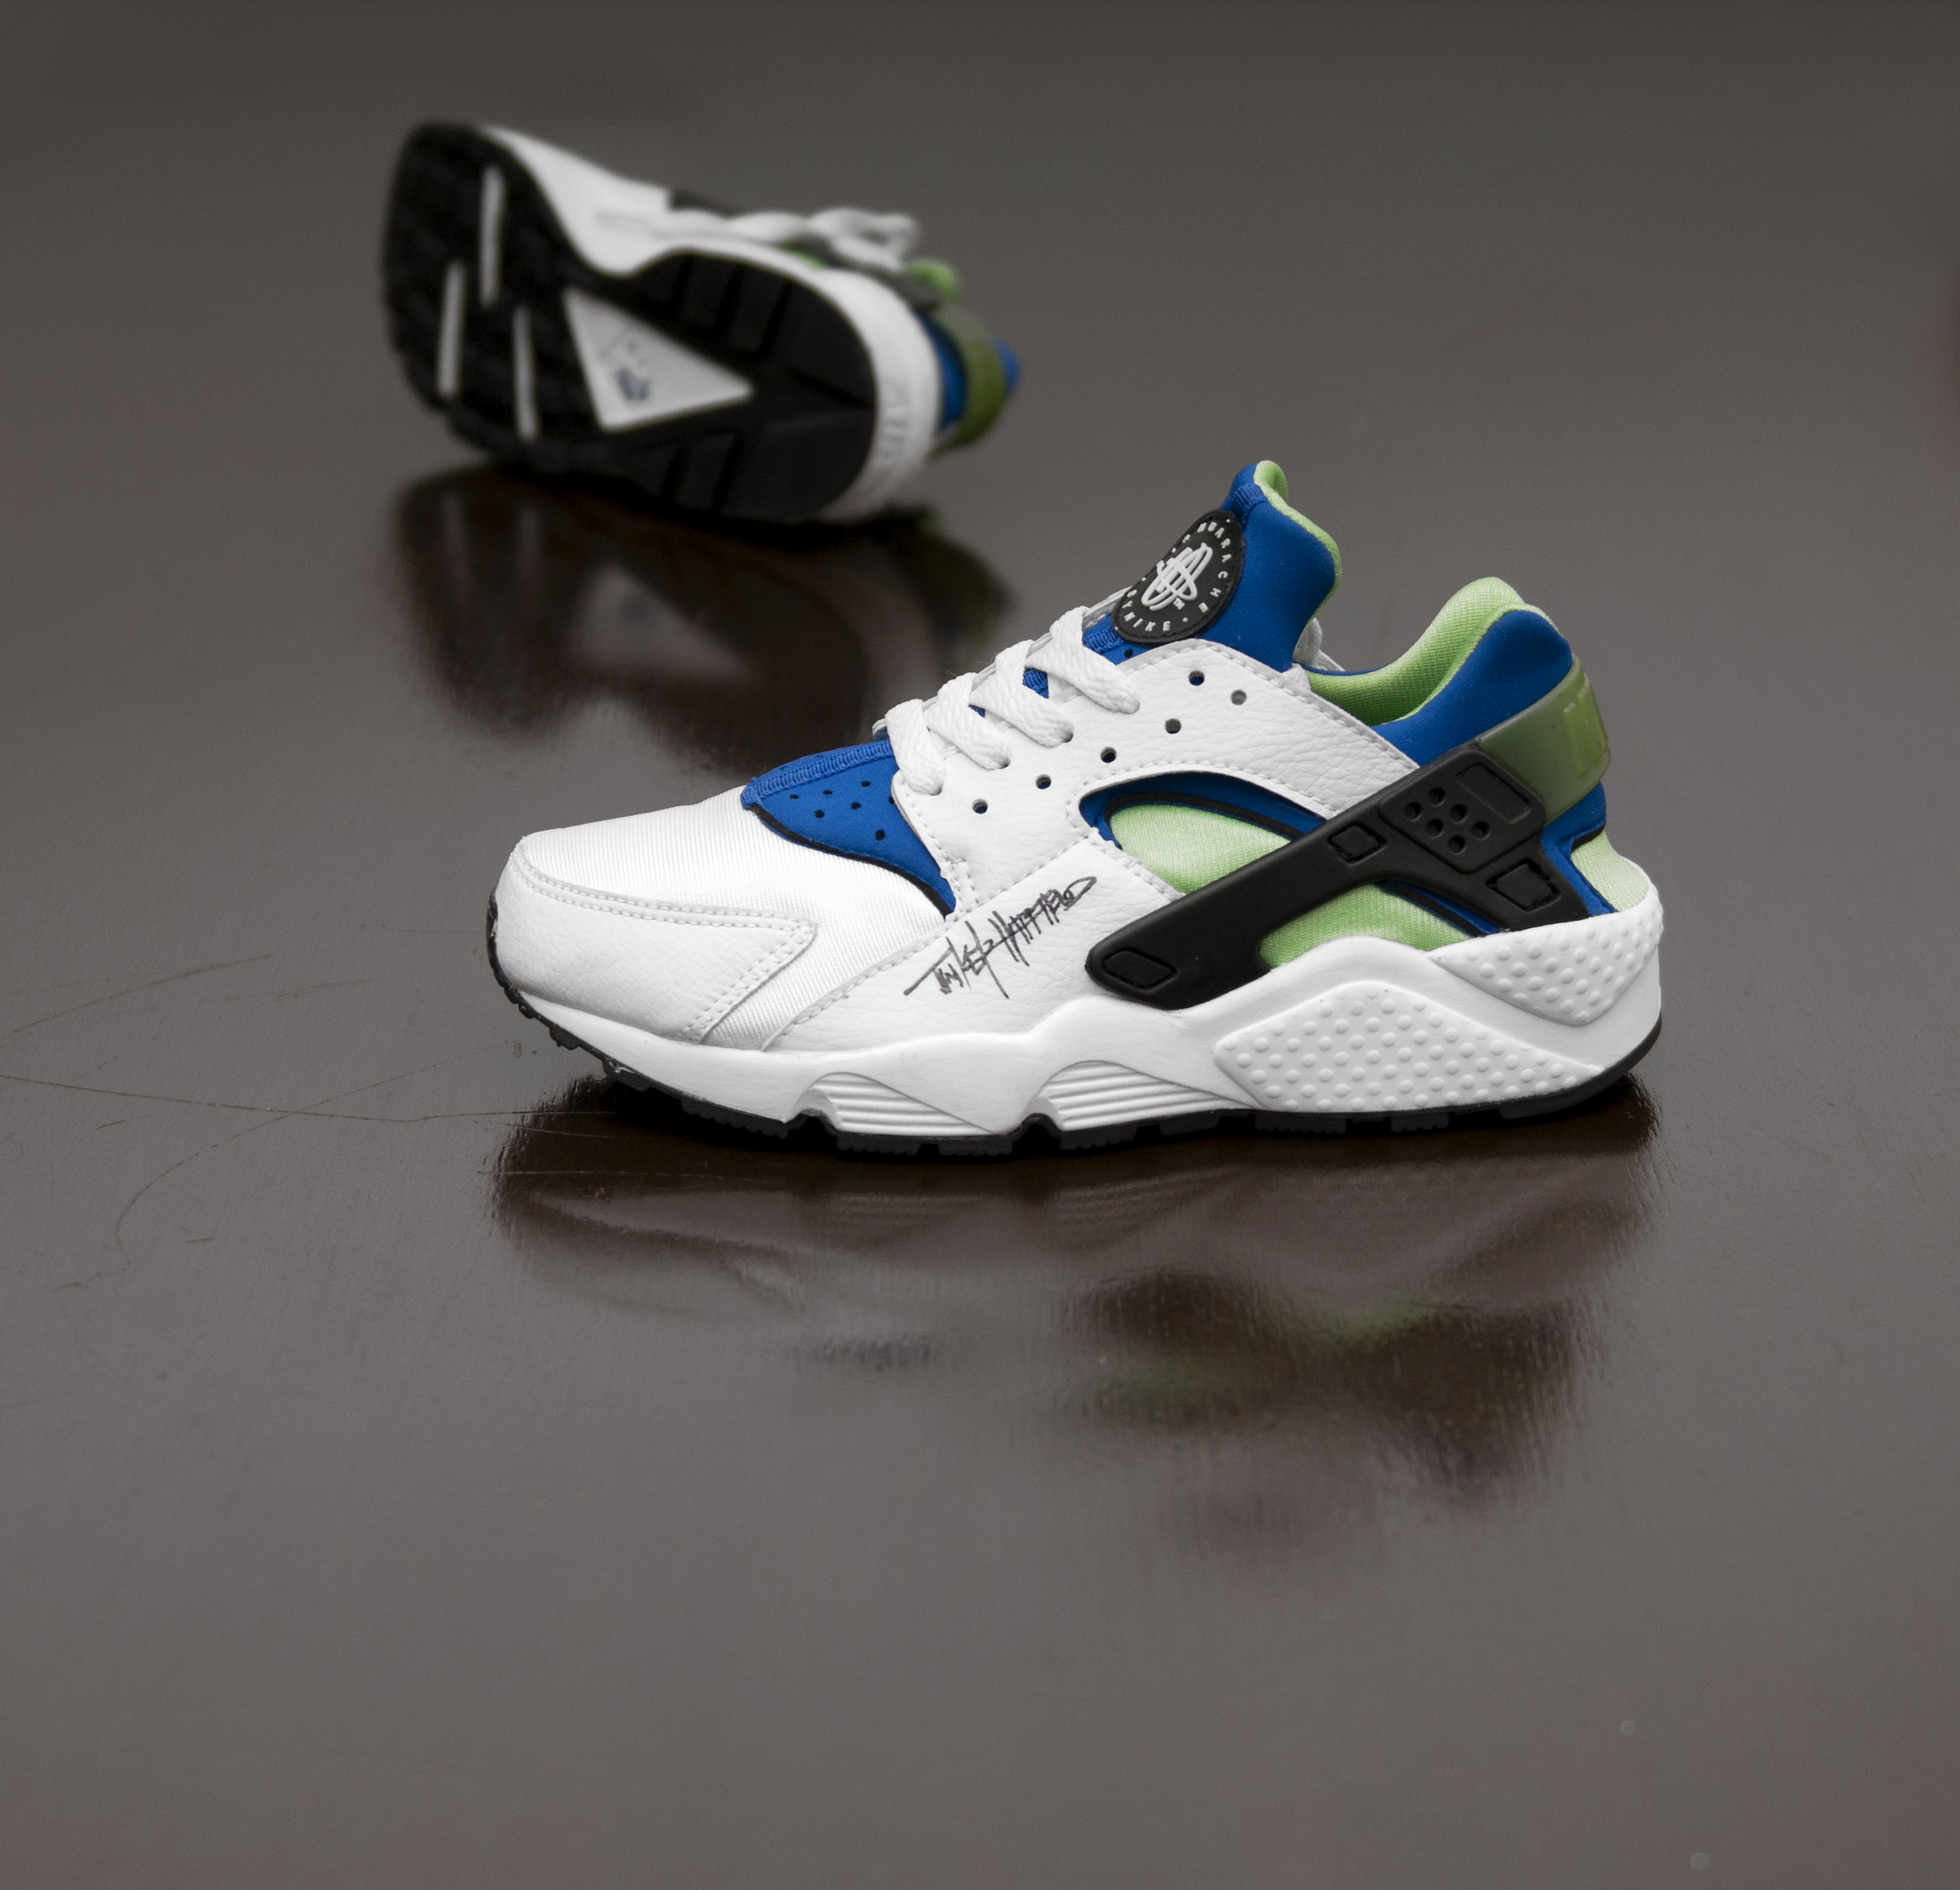 58741fe4b8f2 The Nike Air Huarache  A brief history... - size  blog